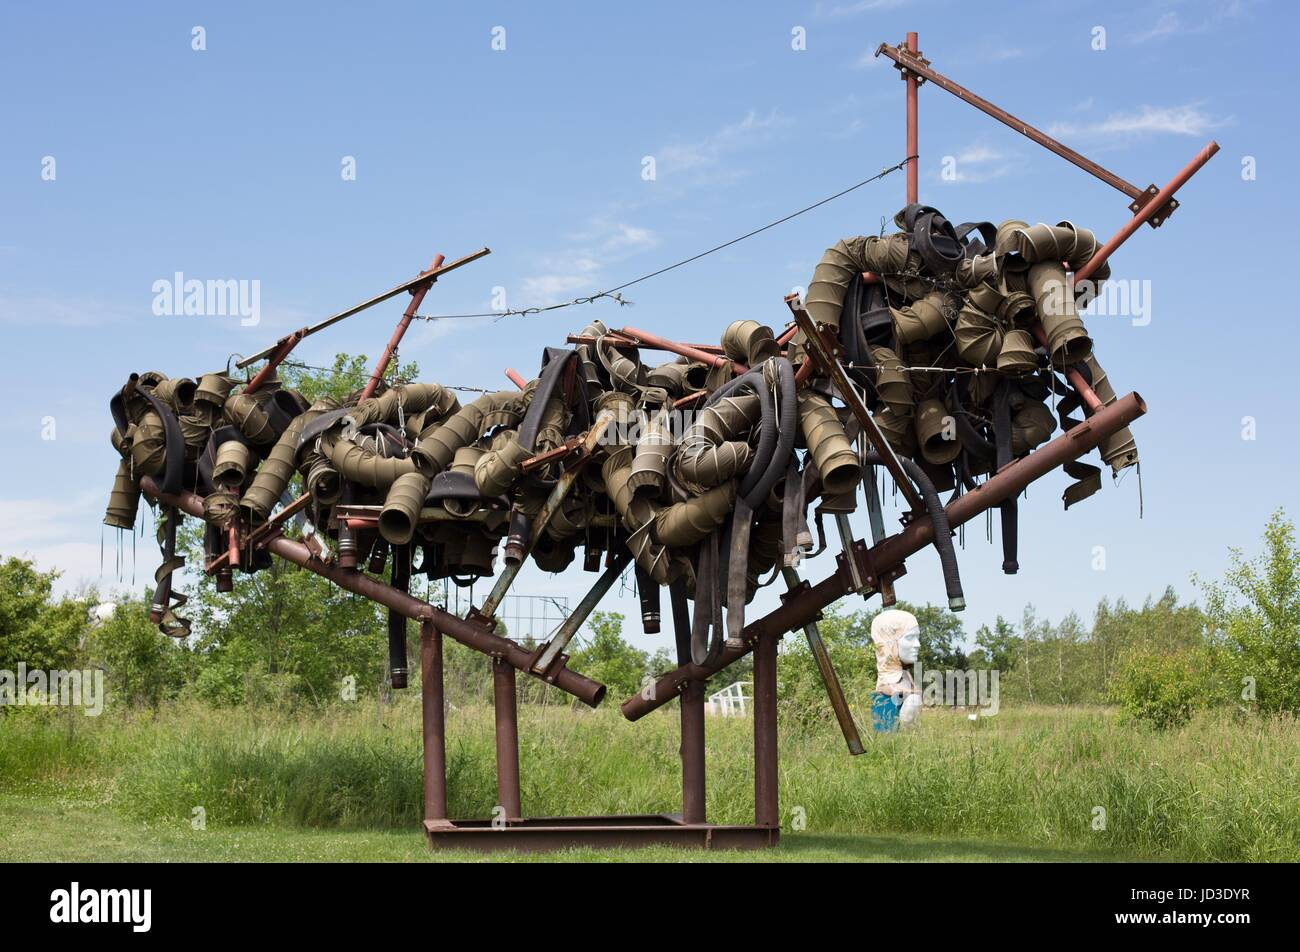 'The Harris Project' by Araan Schmidt, on display at Franconia Sculpture Park in Shafer, Minnesota, USA. - Stock Image